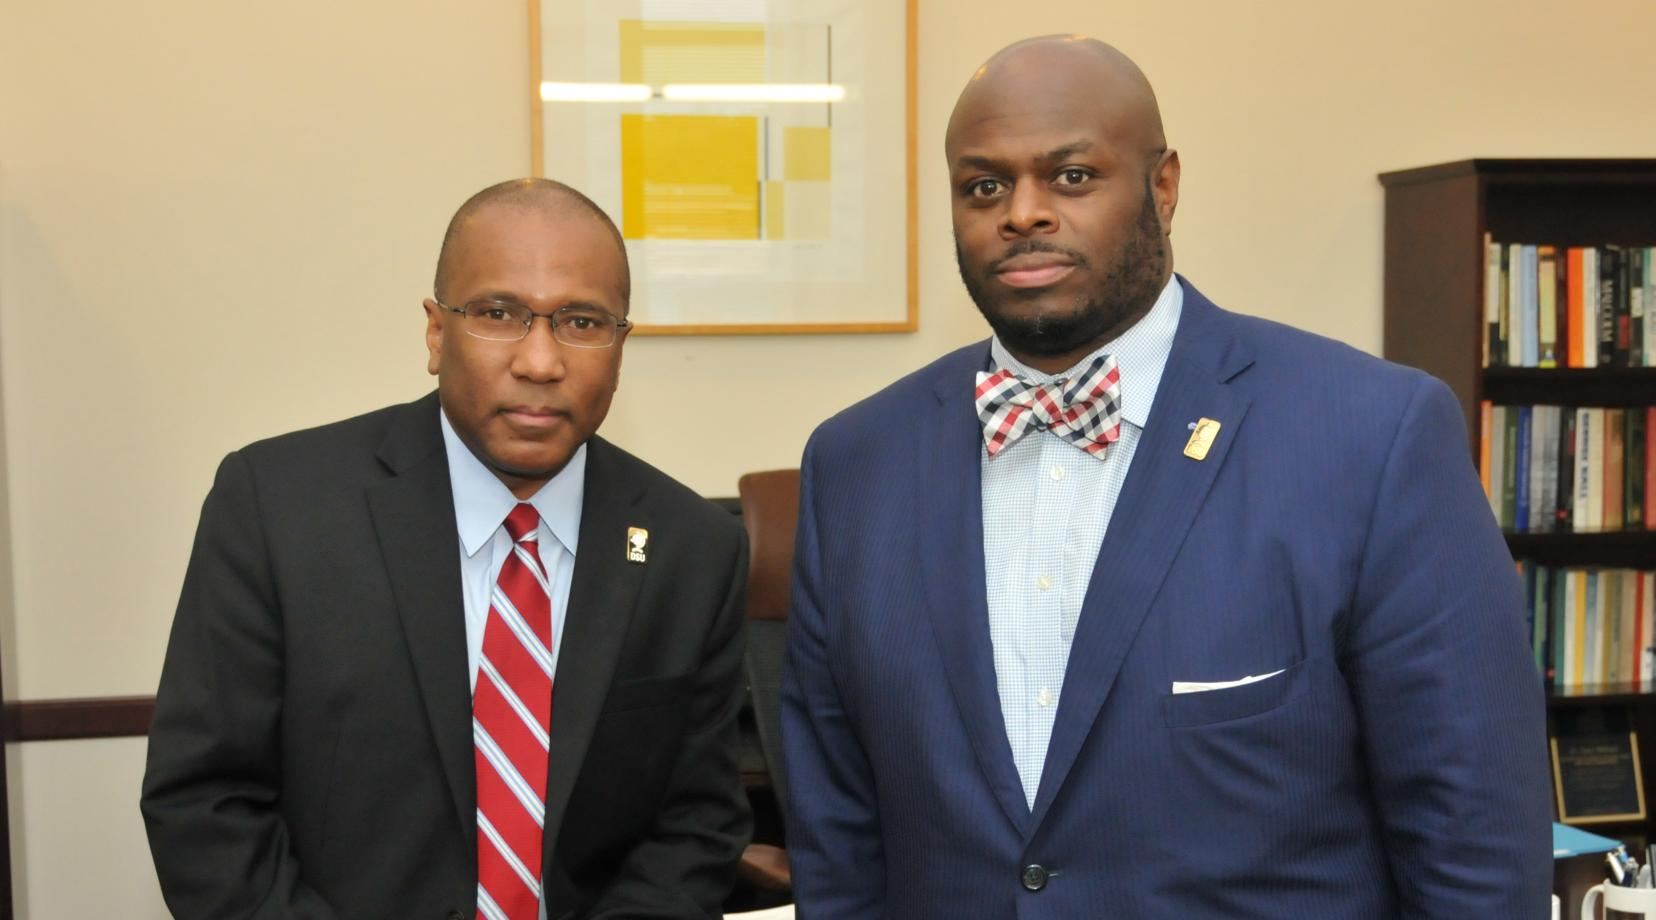 <p>(L-r) DSU President Harry L. Williams and DSU Provost Tony Allen say in a joint statement about Charlottesville that DSU stands in solidarity with those people of all backgrounds who bravely faced hatred of the white supremacist groups last weekend.</p>